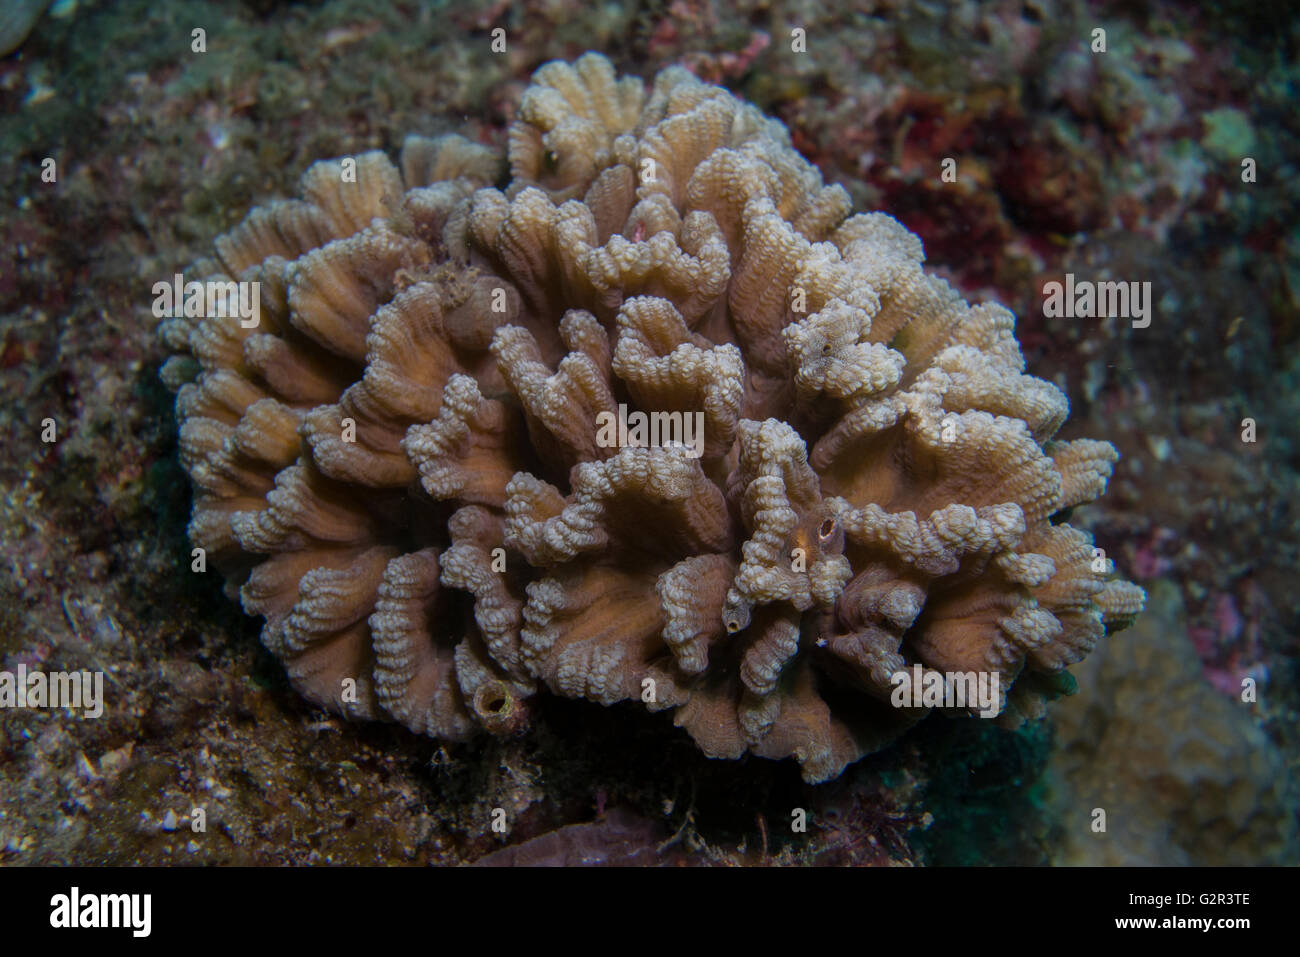 Hard coral or stony coral, tropical coral reef, Brunei, Coral triangle. - Stock Image